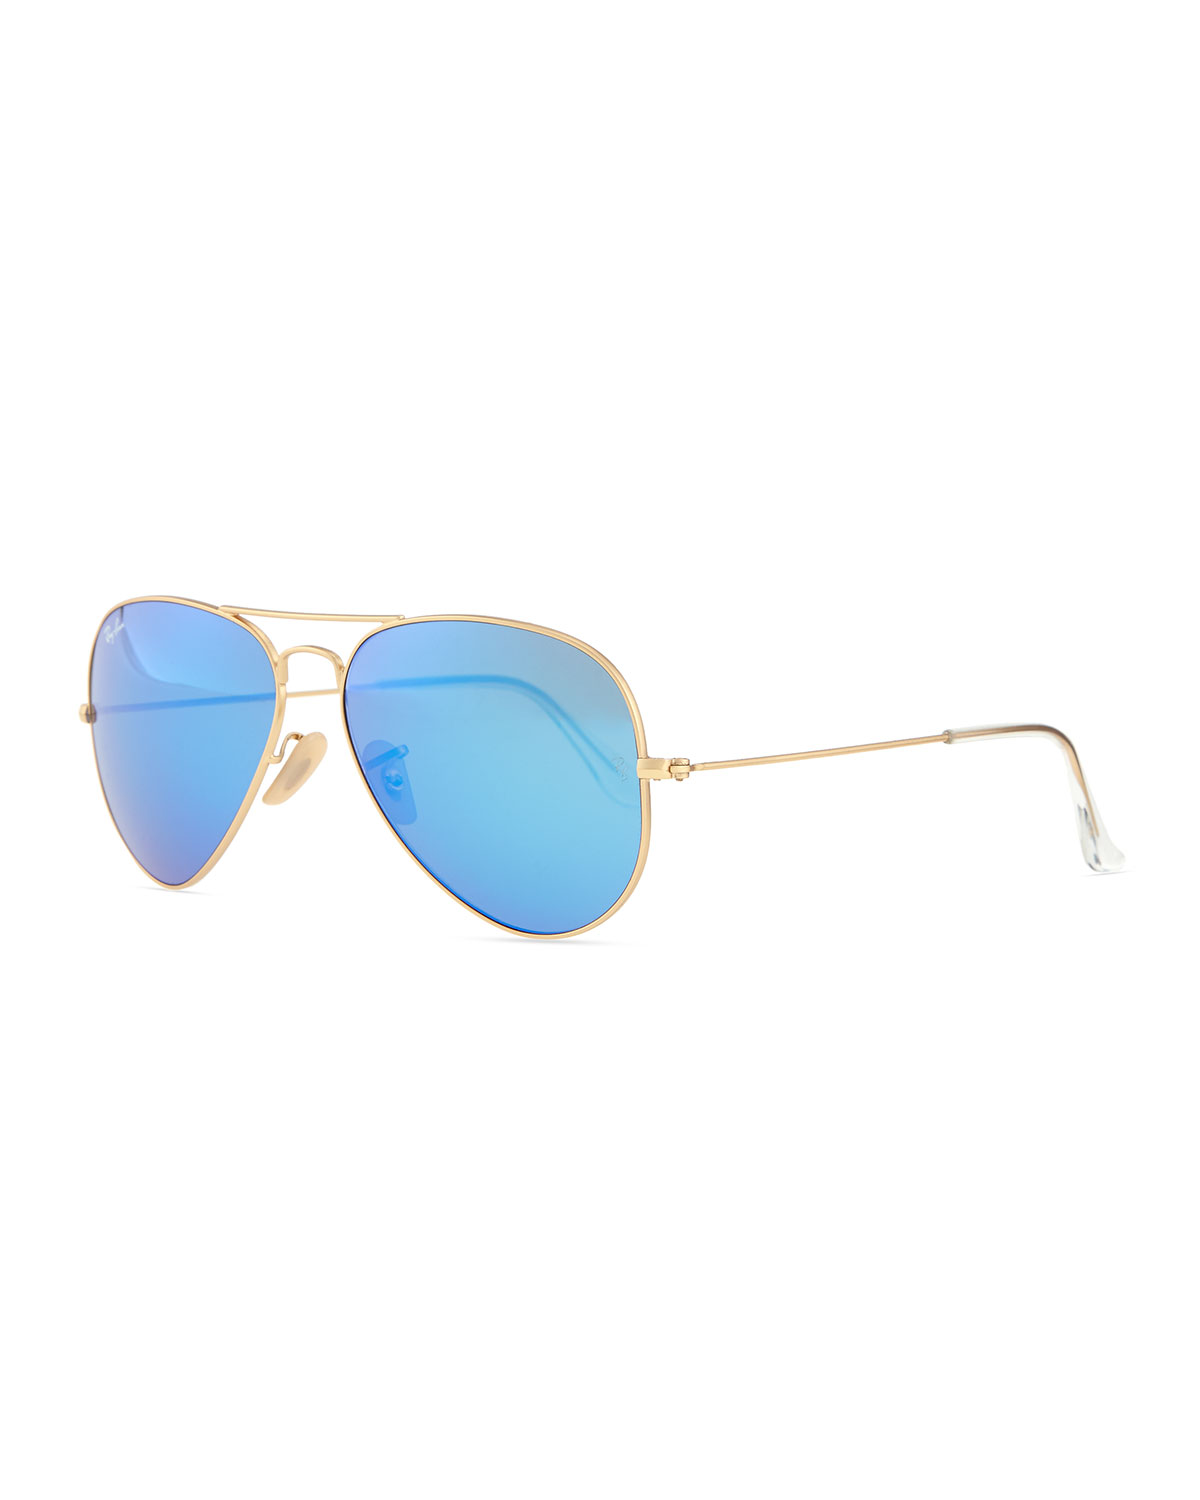 9933bdad35 Ray-Ban Aviator Sunglasses with Flash Lenses